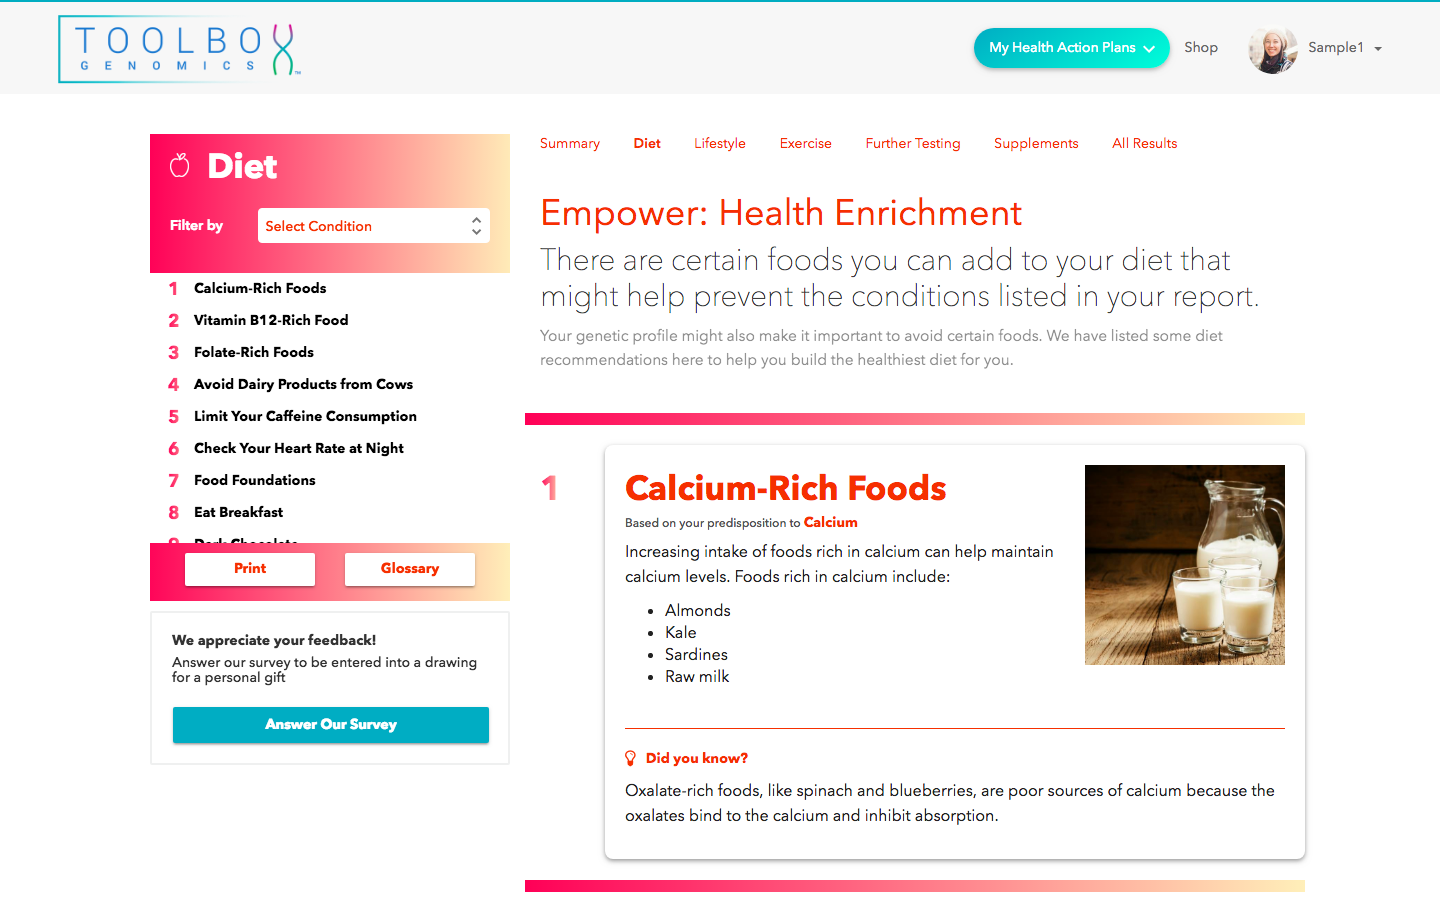 Empower gene app by Toolbox Genomics in Sequencing.com's DNA App Store provides the highest rated DNA personalized nutrition plan including diet, weight loss, fitness, vitamins and overall health guidance and is compatible with DNA data from all genetic tests including AncestryDNA, 23andMe, 23andMe sequencing, FamilyTreeDNA, MyHeritage, Genes for Good (GFG), Helix, Exome Plus, All Of Us, Dante Labs, LivingDNA and gene sequencing